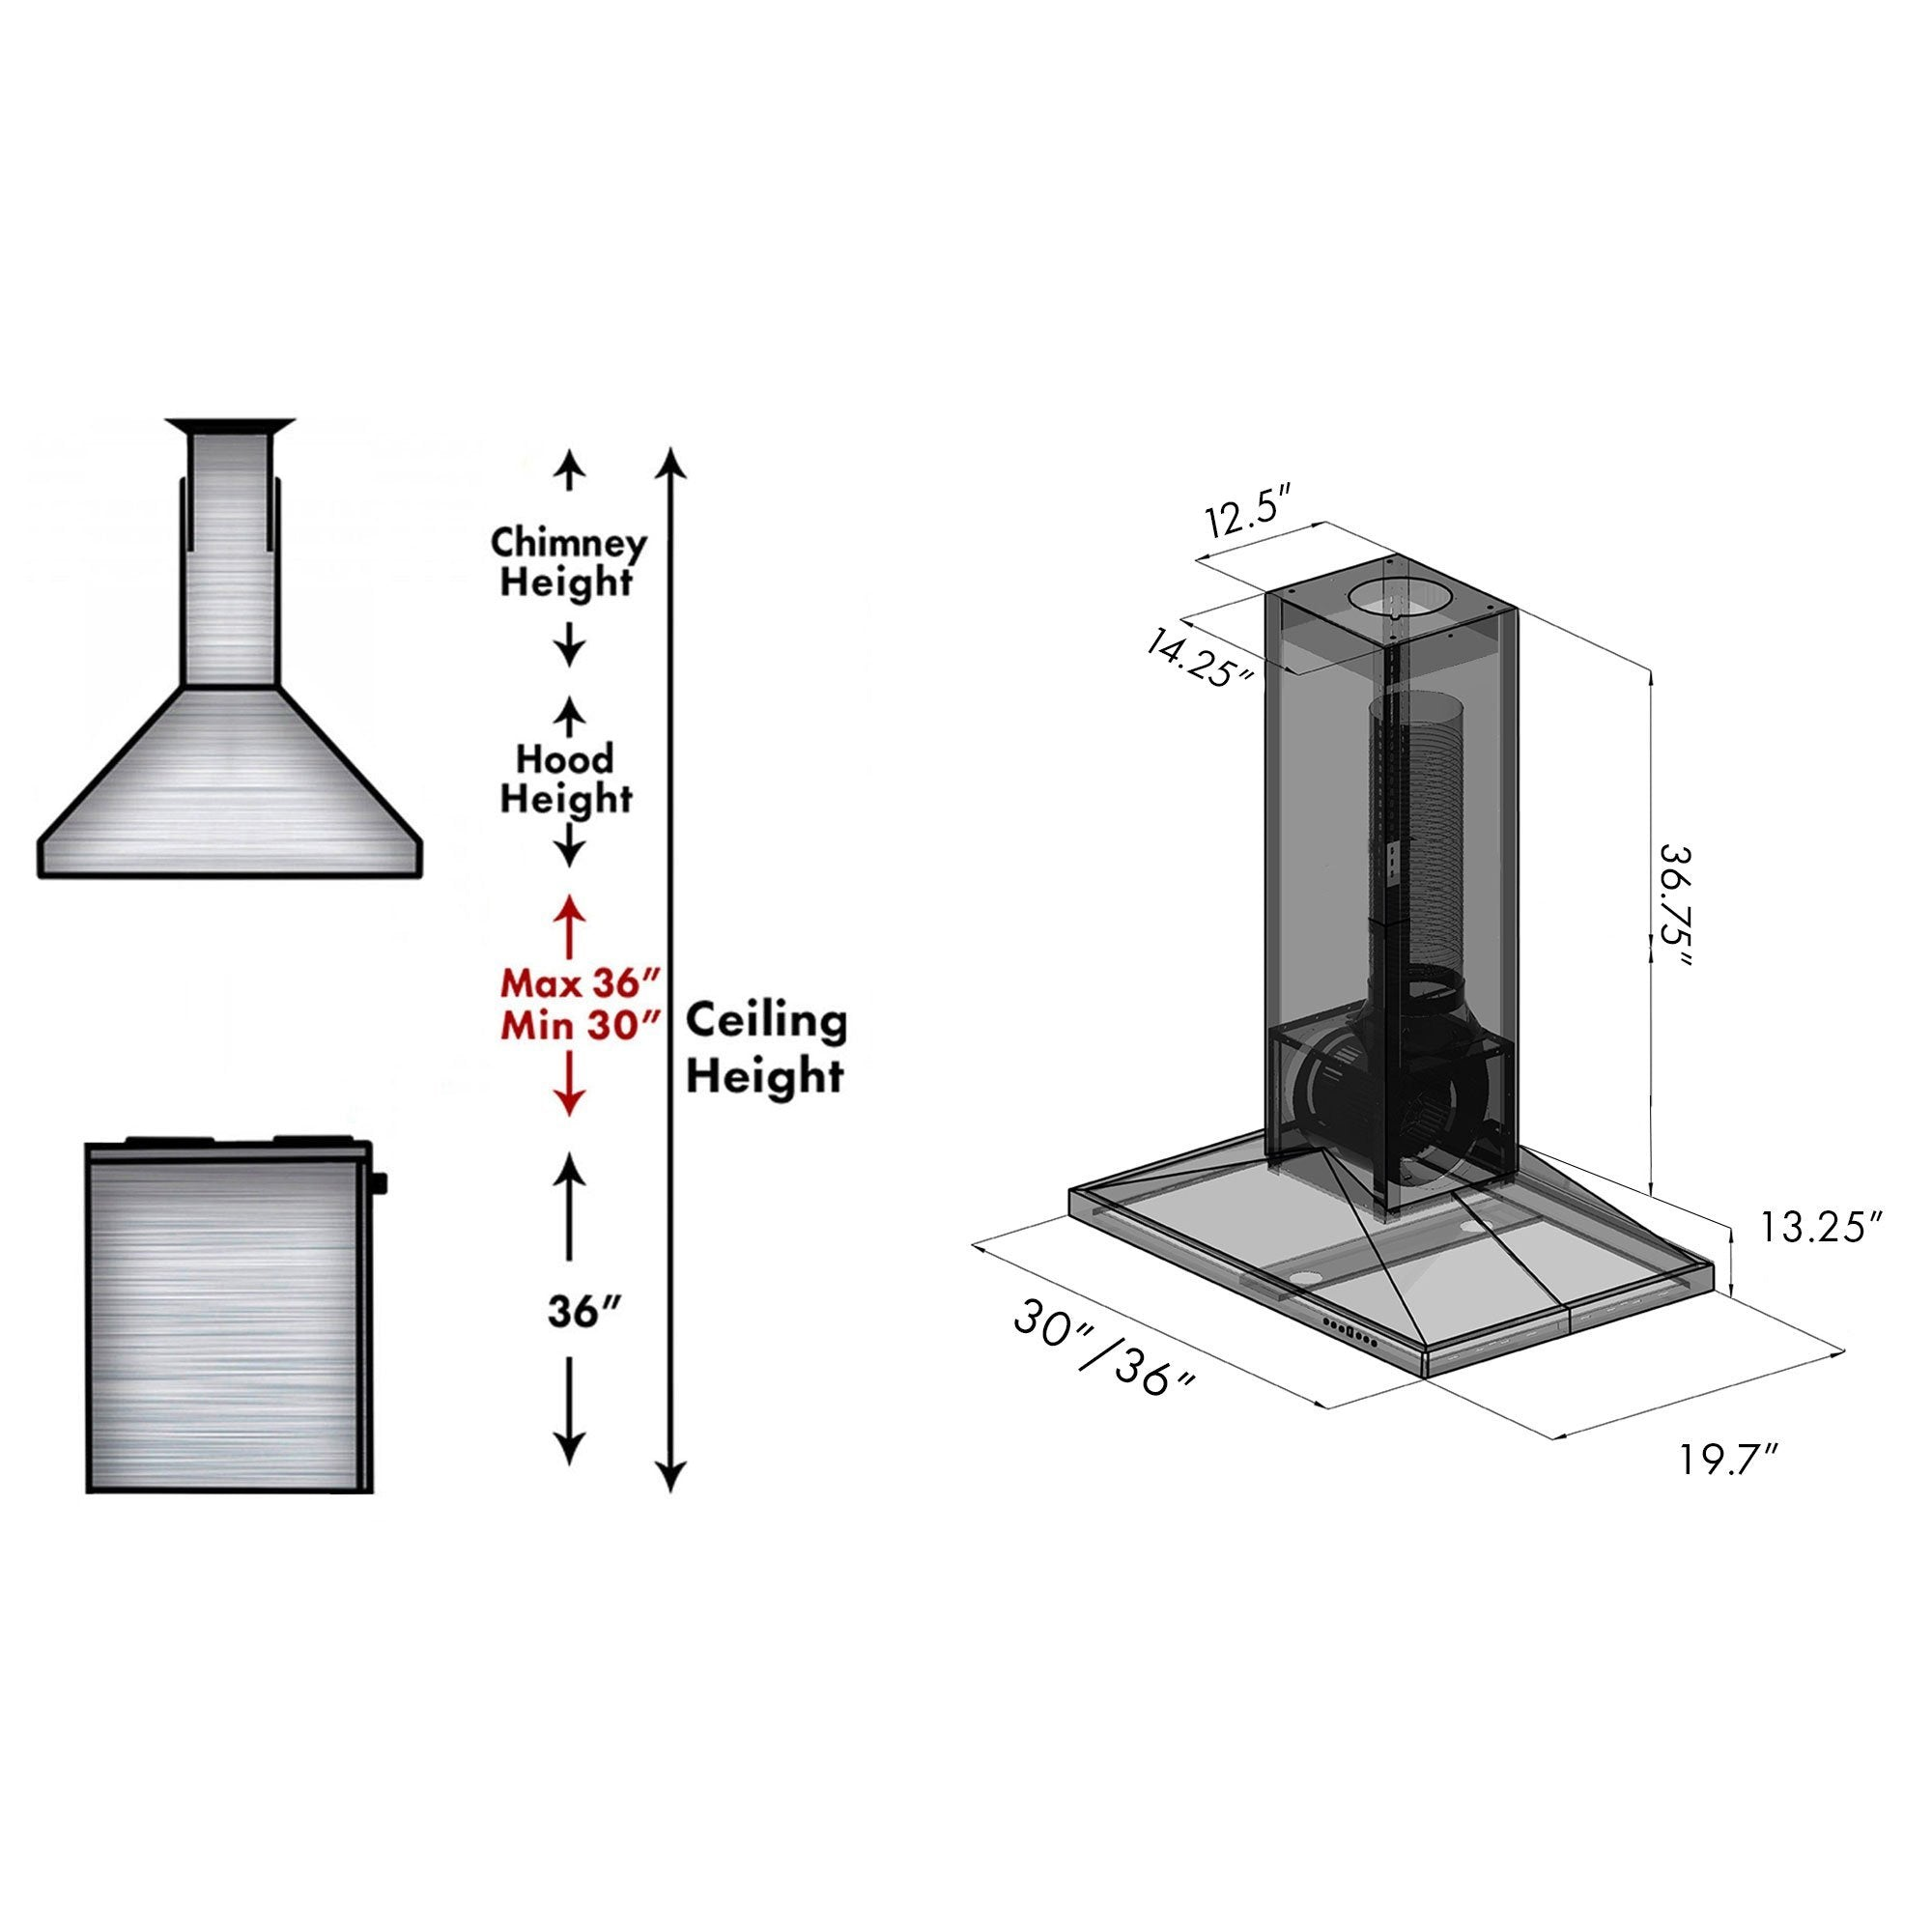 ZLINE Wooden Island Mount Range Hood in Gray - Includes Remote Motor (KBiUU-RS-400)